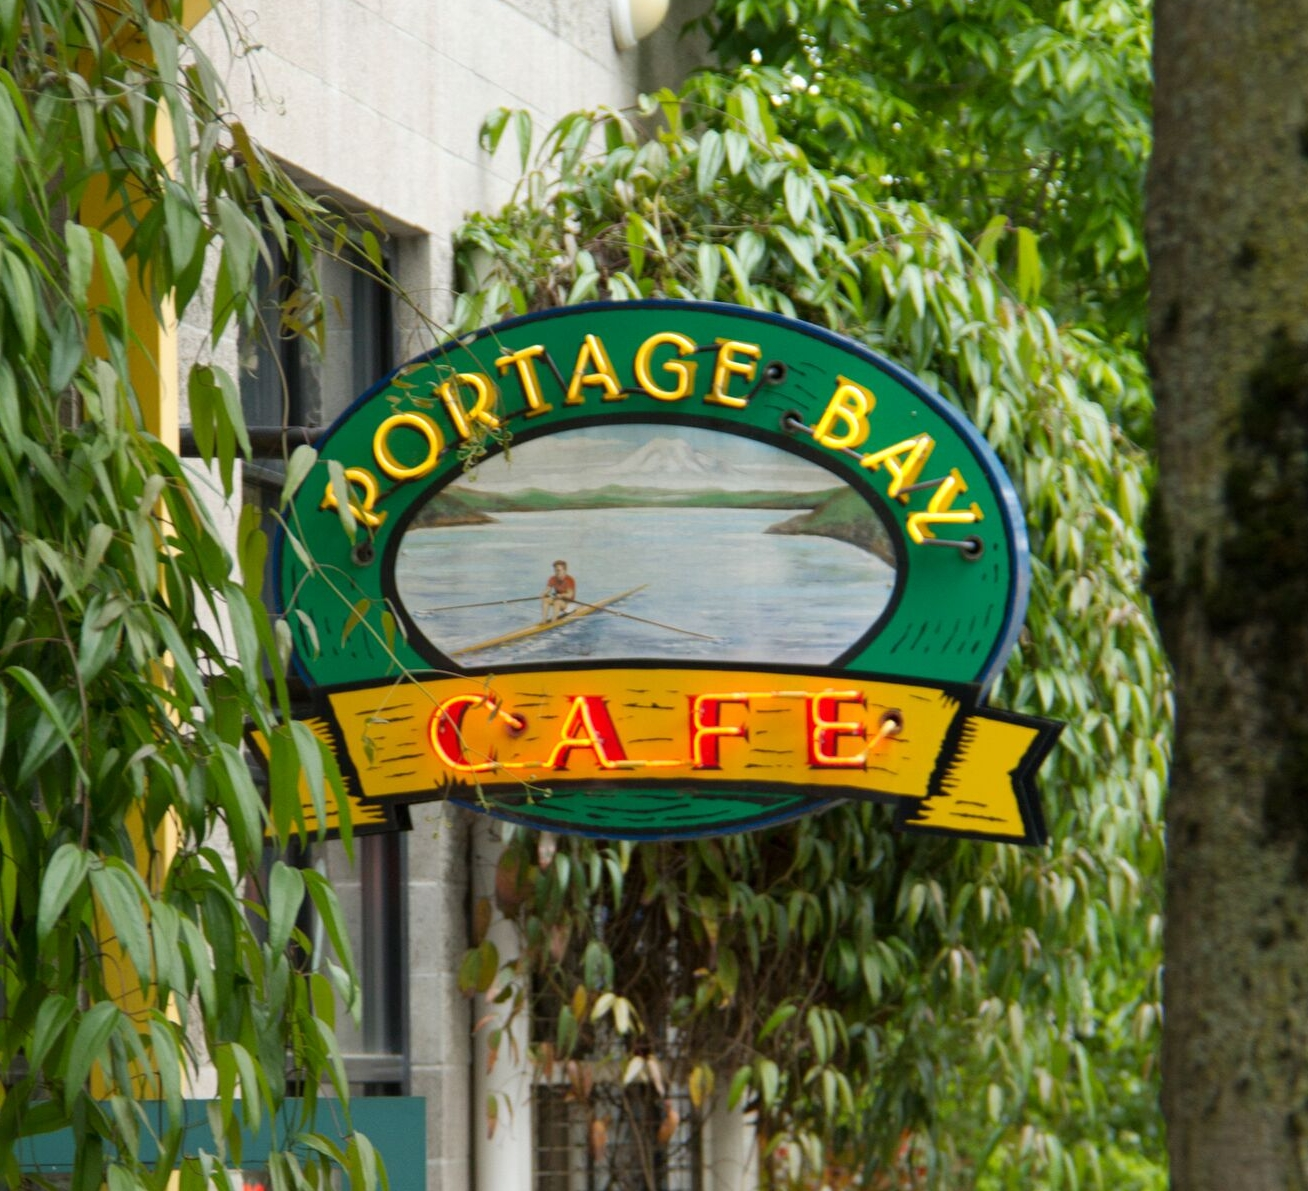 Portage Bay recently celebrated its 20th anniversary.